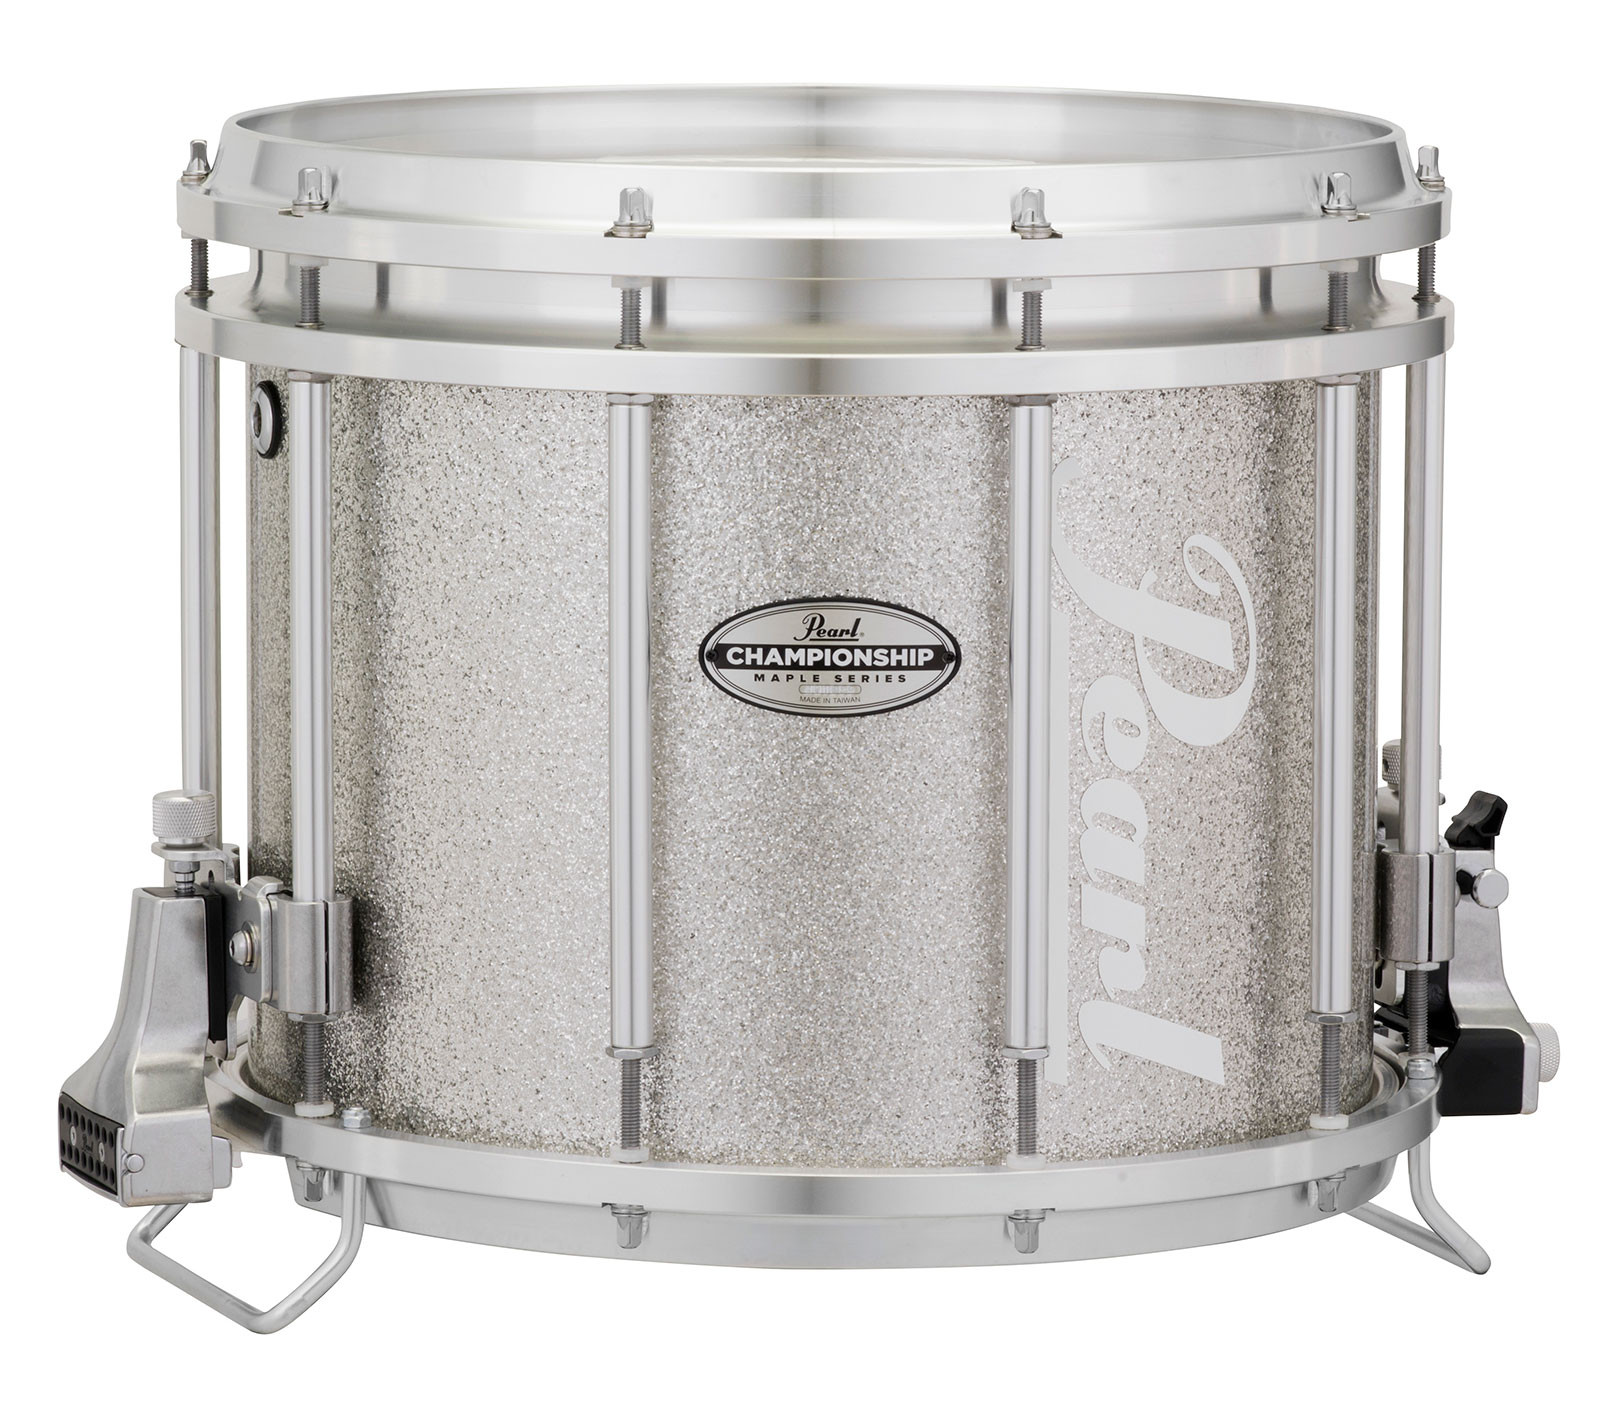 Pearl Championship Maple Series Lacquered FFXML Marching Snare Drums ...